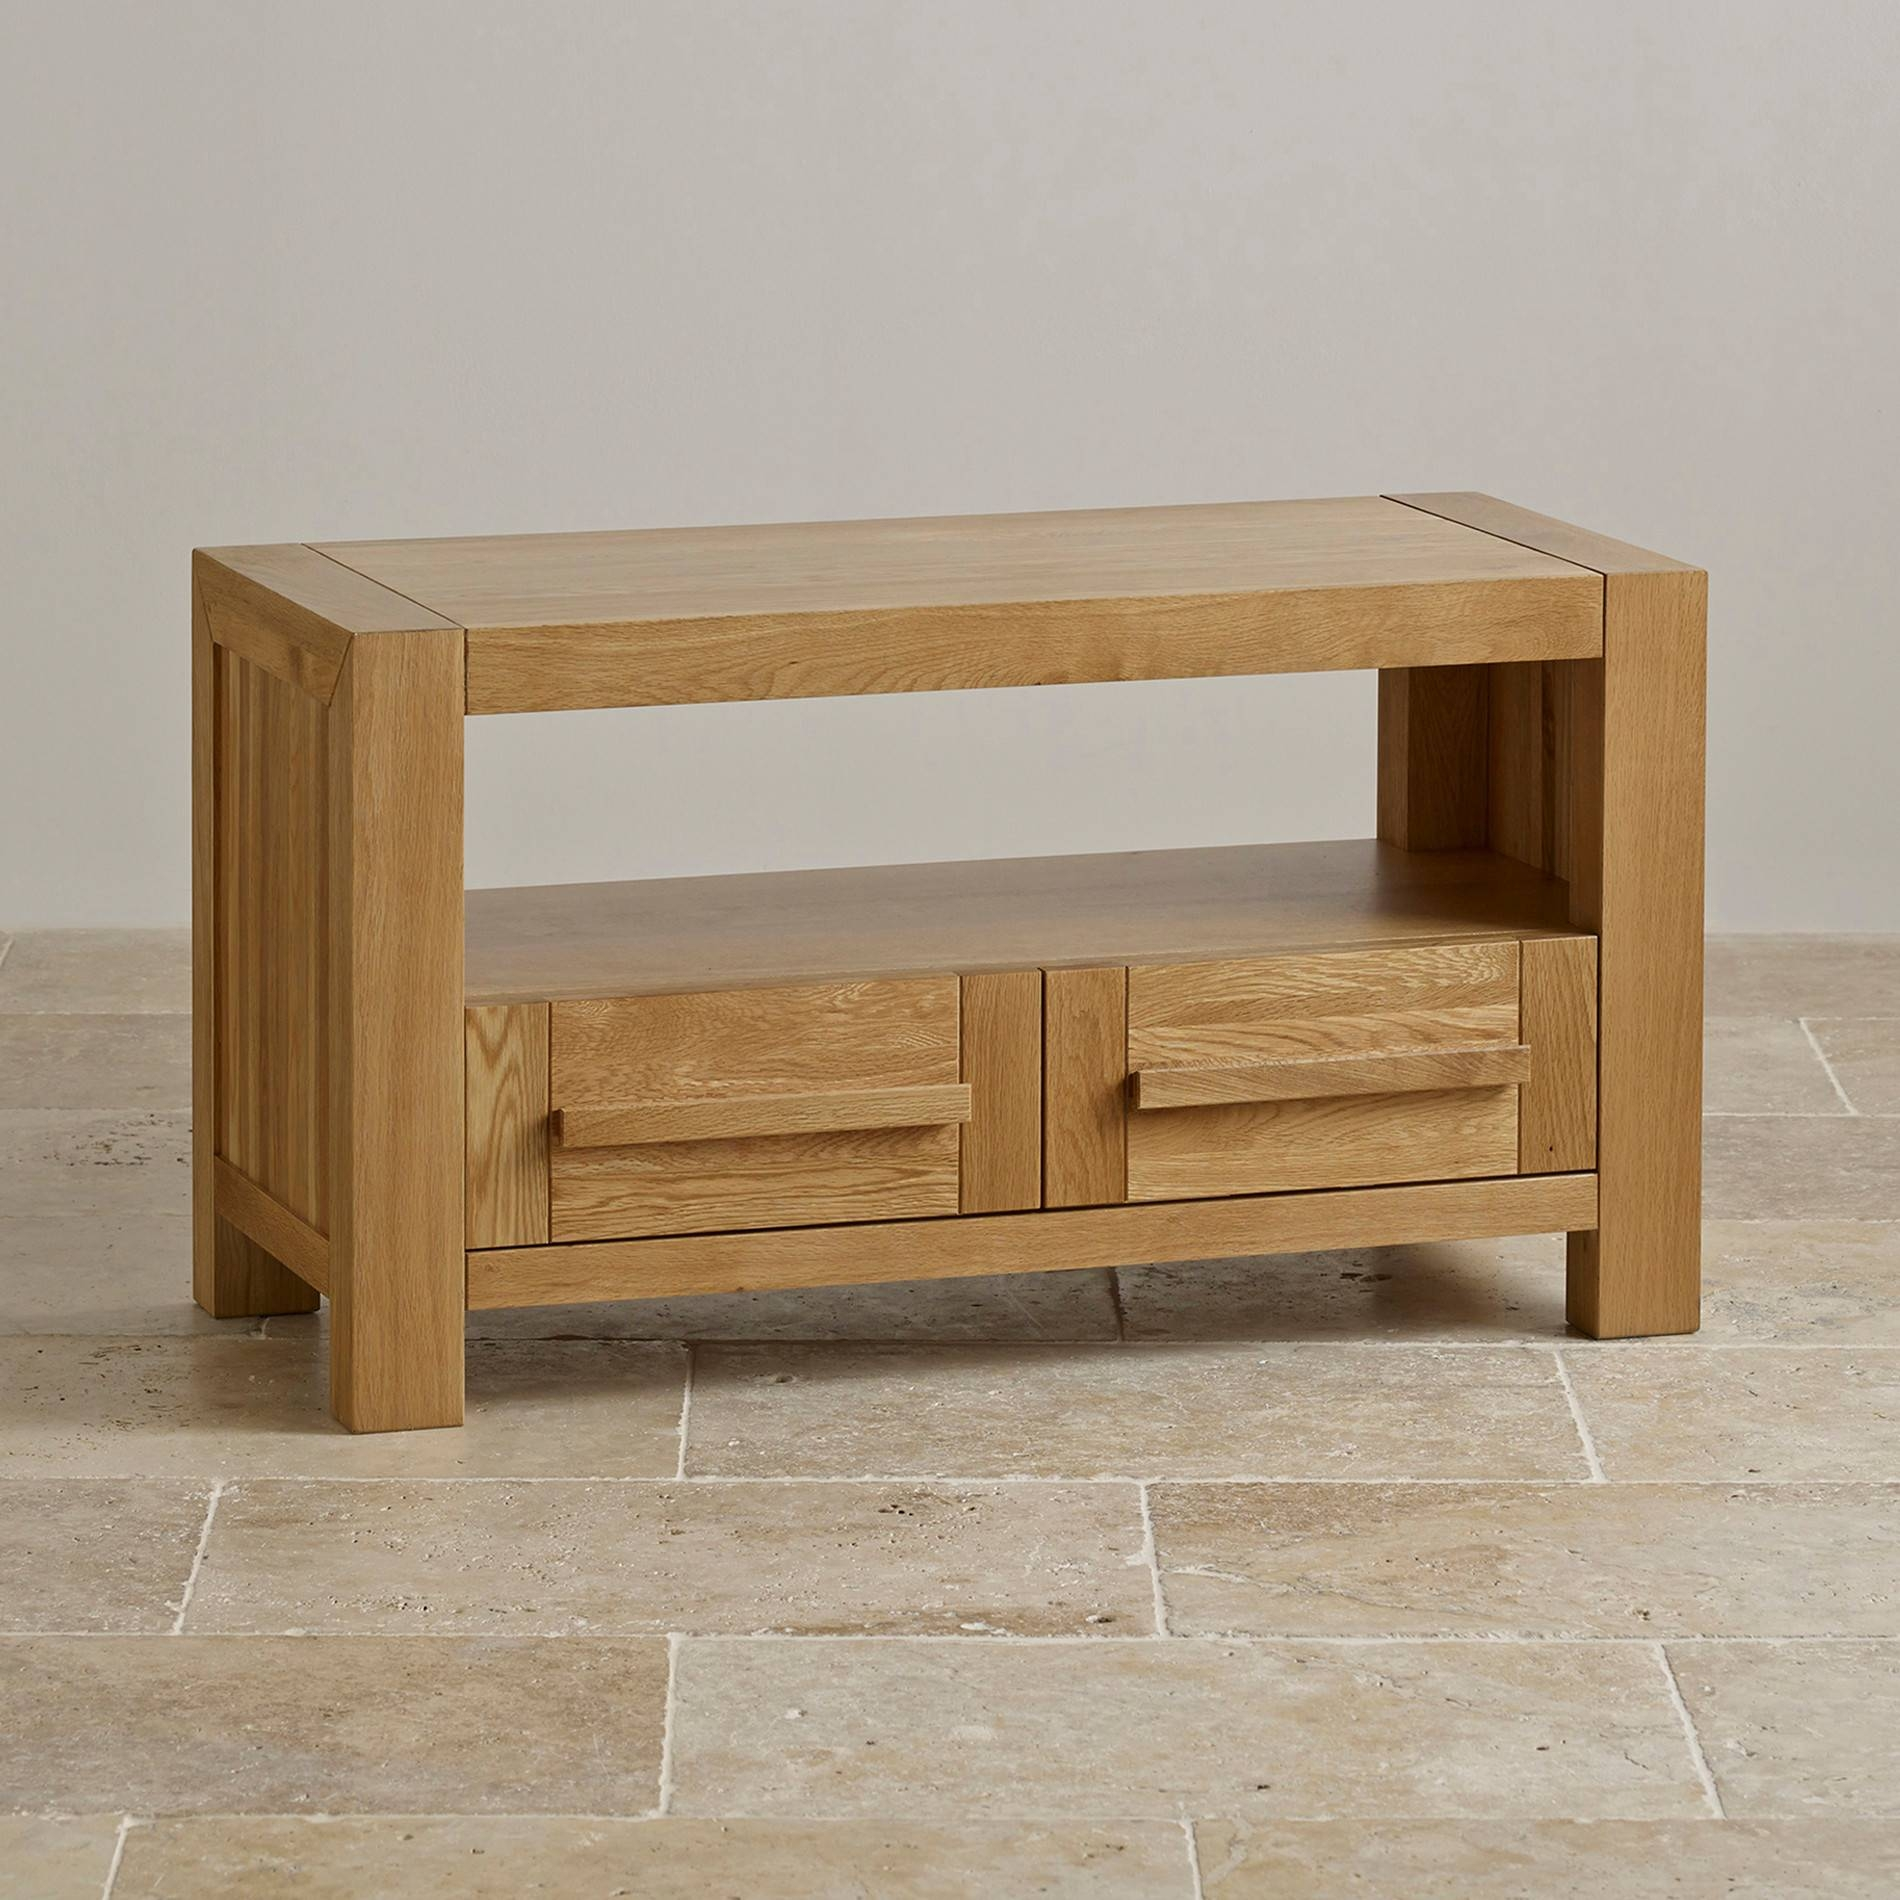 Fresco 2 Drawer Tv Cabinet In Solid Oak | Oak Furniture Land Intended For Tv Stands In Oak (View 2 of 15)